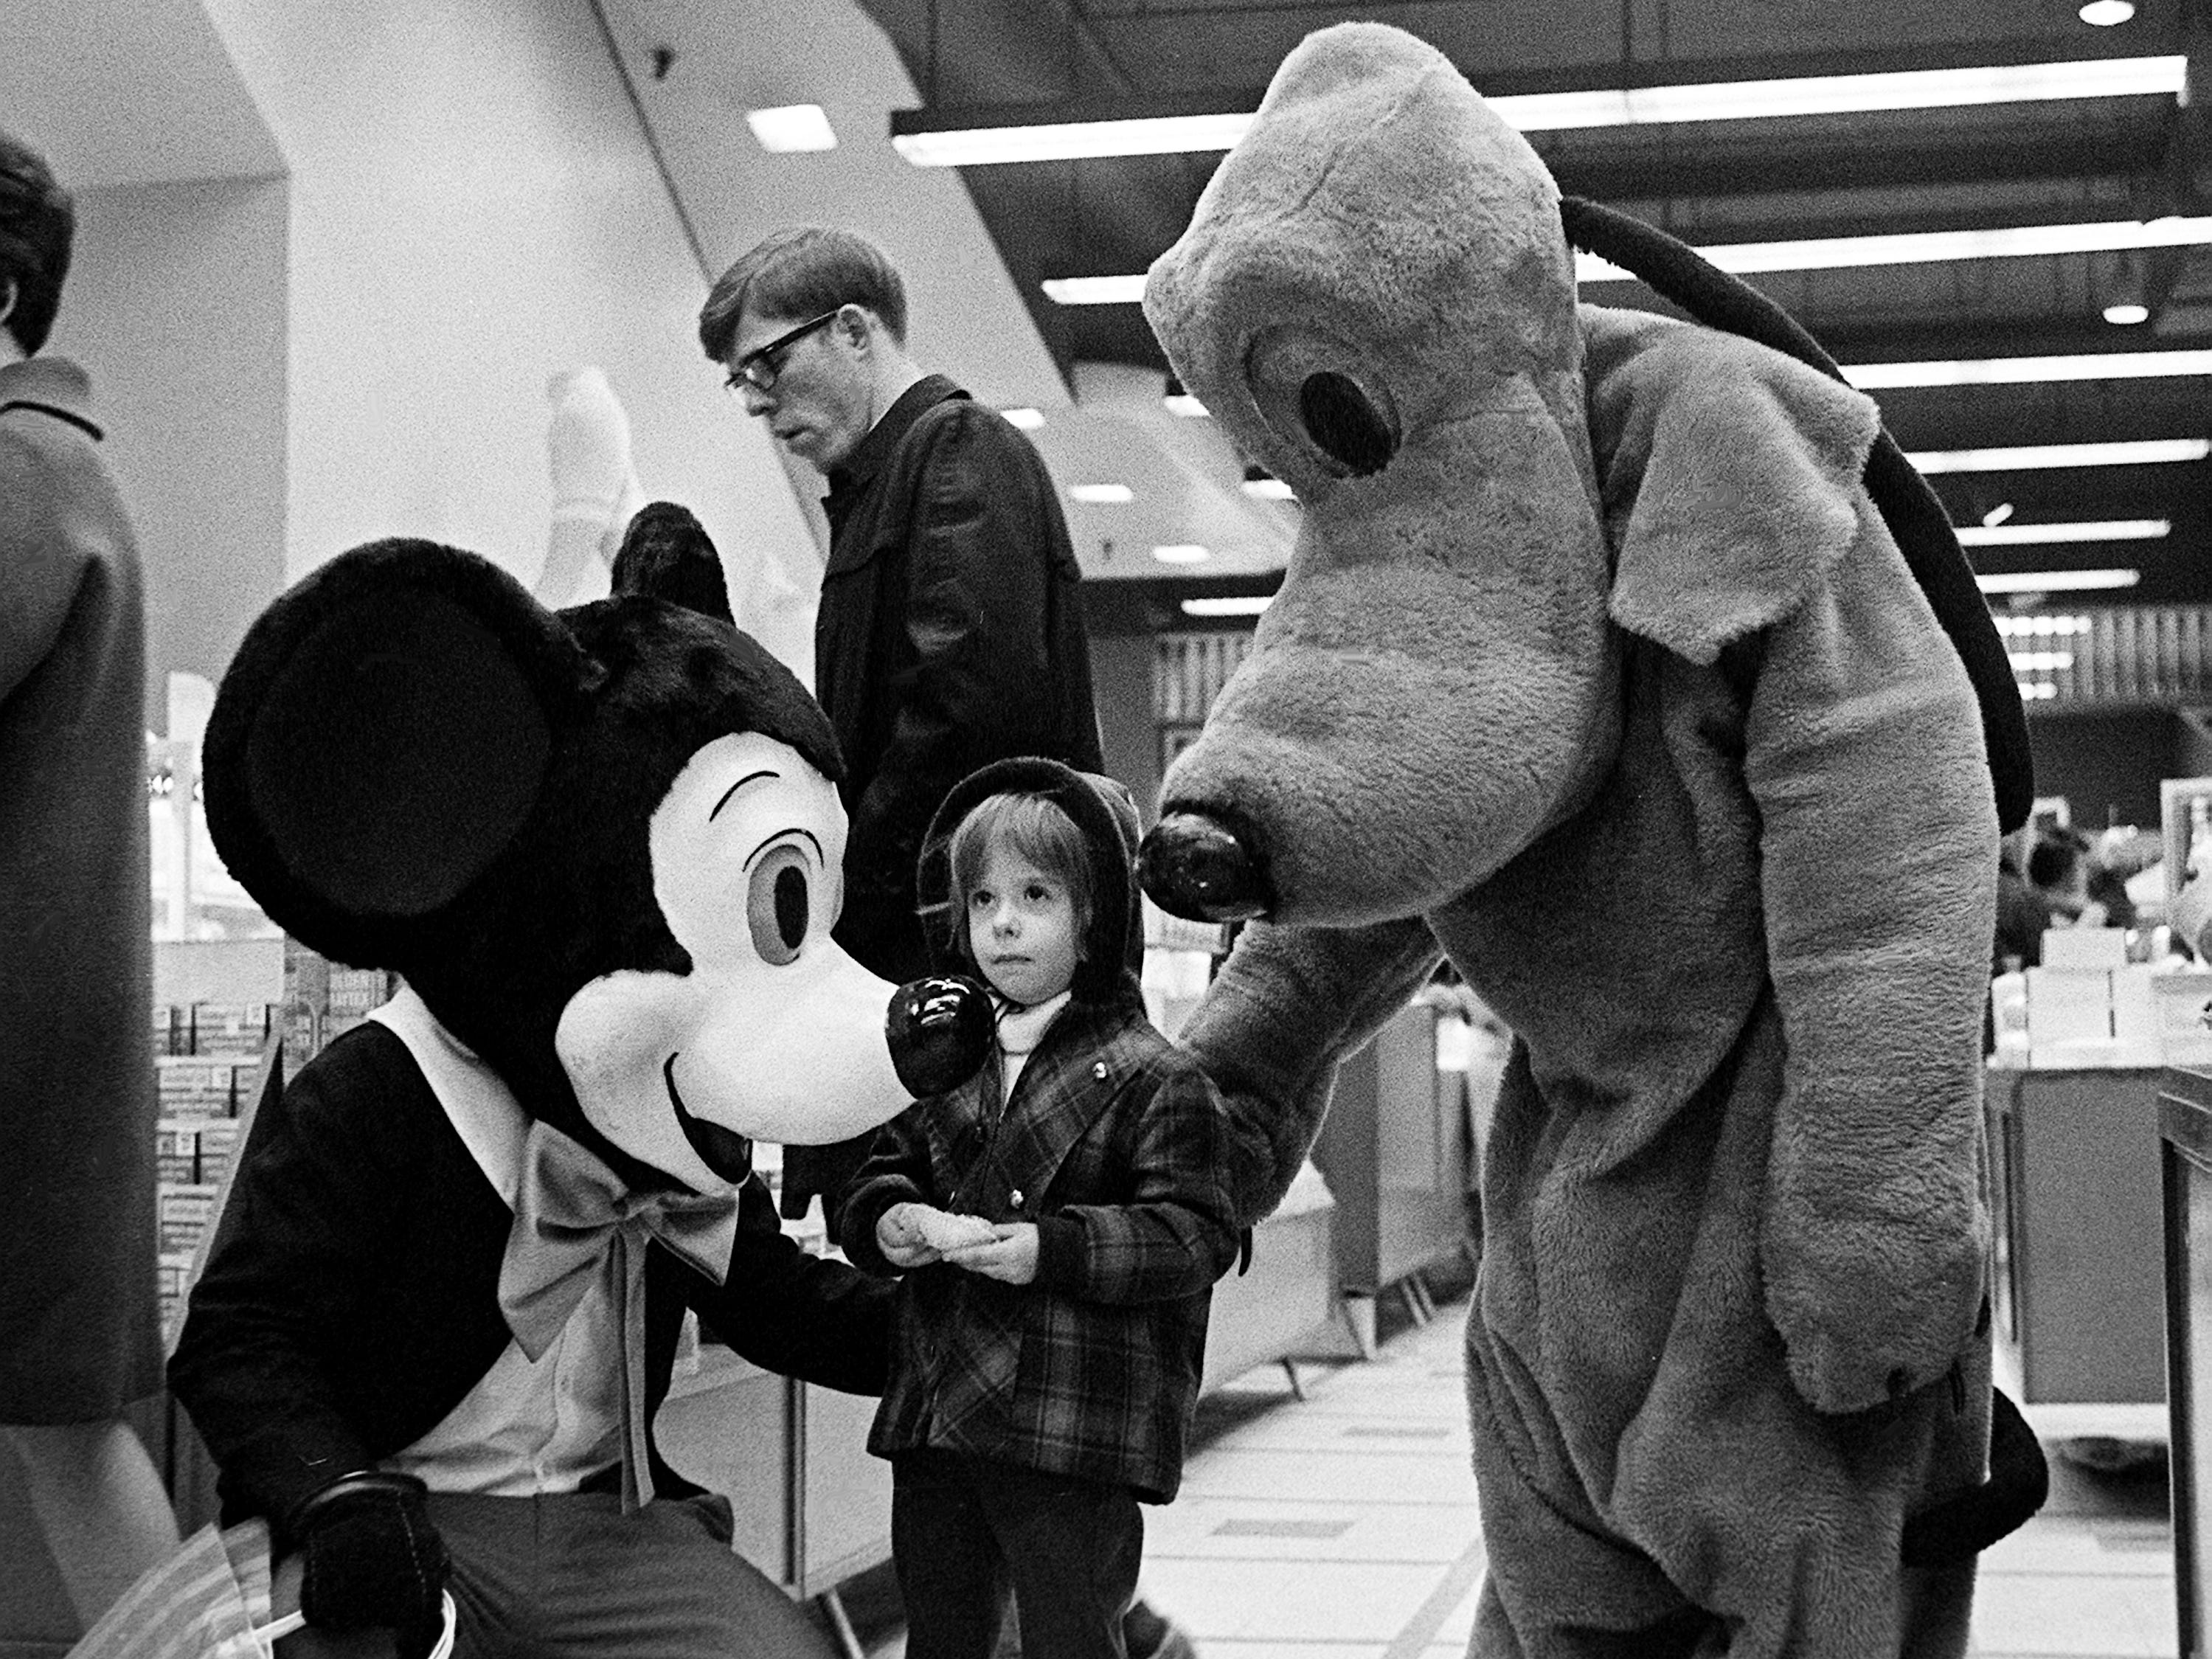 Tiny Nicole Jelesoff, 4, stares in amazement as she is confronted by Mickey Mouse and Pluto at Harveys in downtown Nashville on Dec. 16, 1968. The popular Disney cartoon characters, brought to life by Glenn Gailbreath, 18, and Junior Warren, 17, greet young and old shoppers each day in the store.